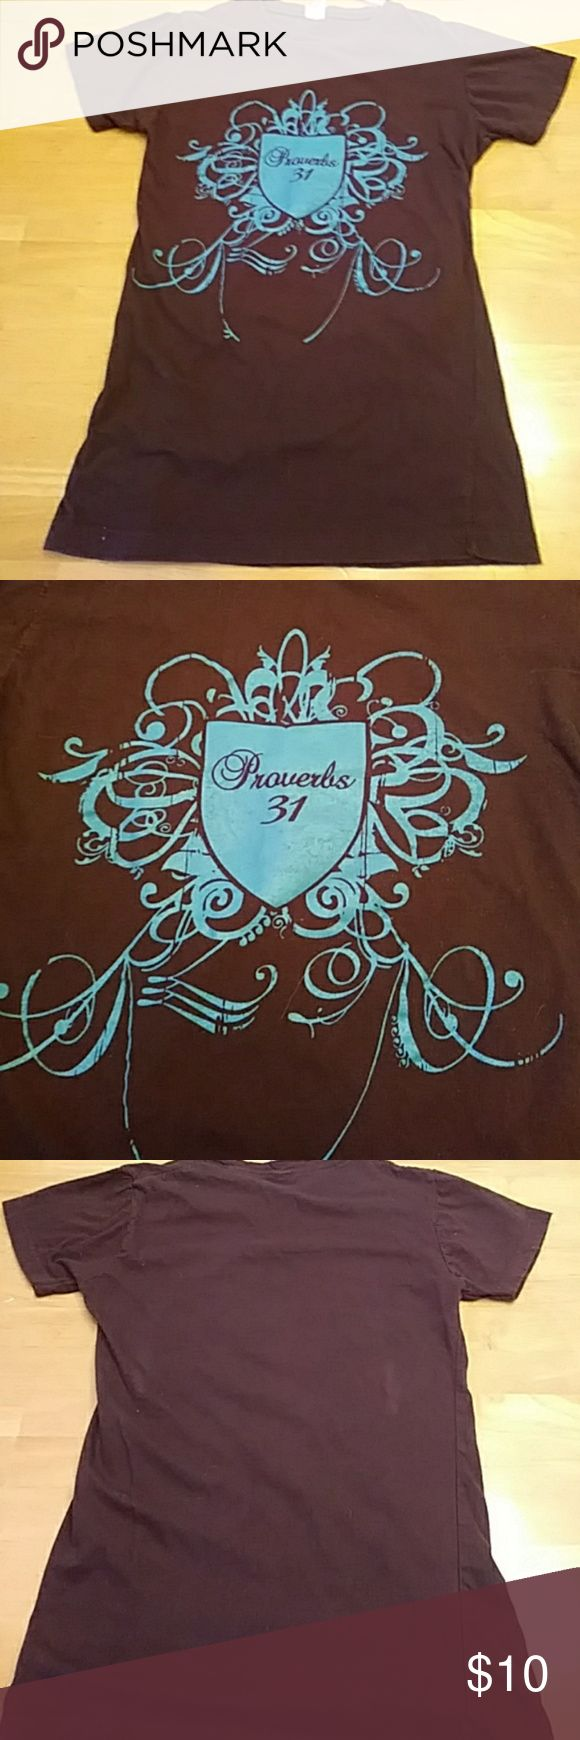 Proverbs 31 small girls tee In perfect condition... Made from 100% combed ringspun cotton. Preshrunk. :) Shirts & Tops Tees - Short Sleeve